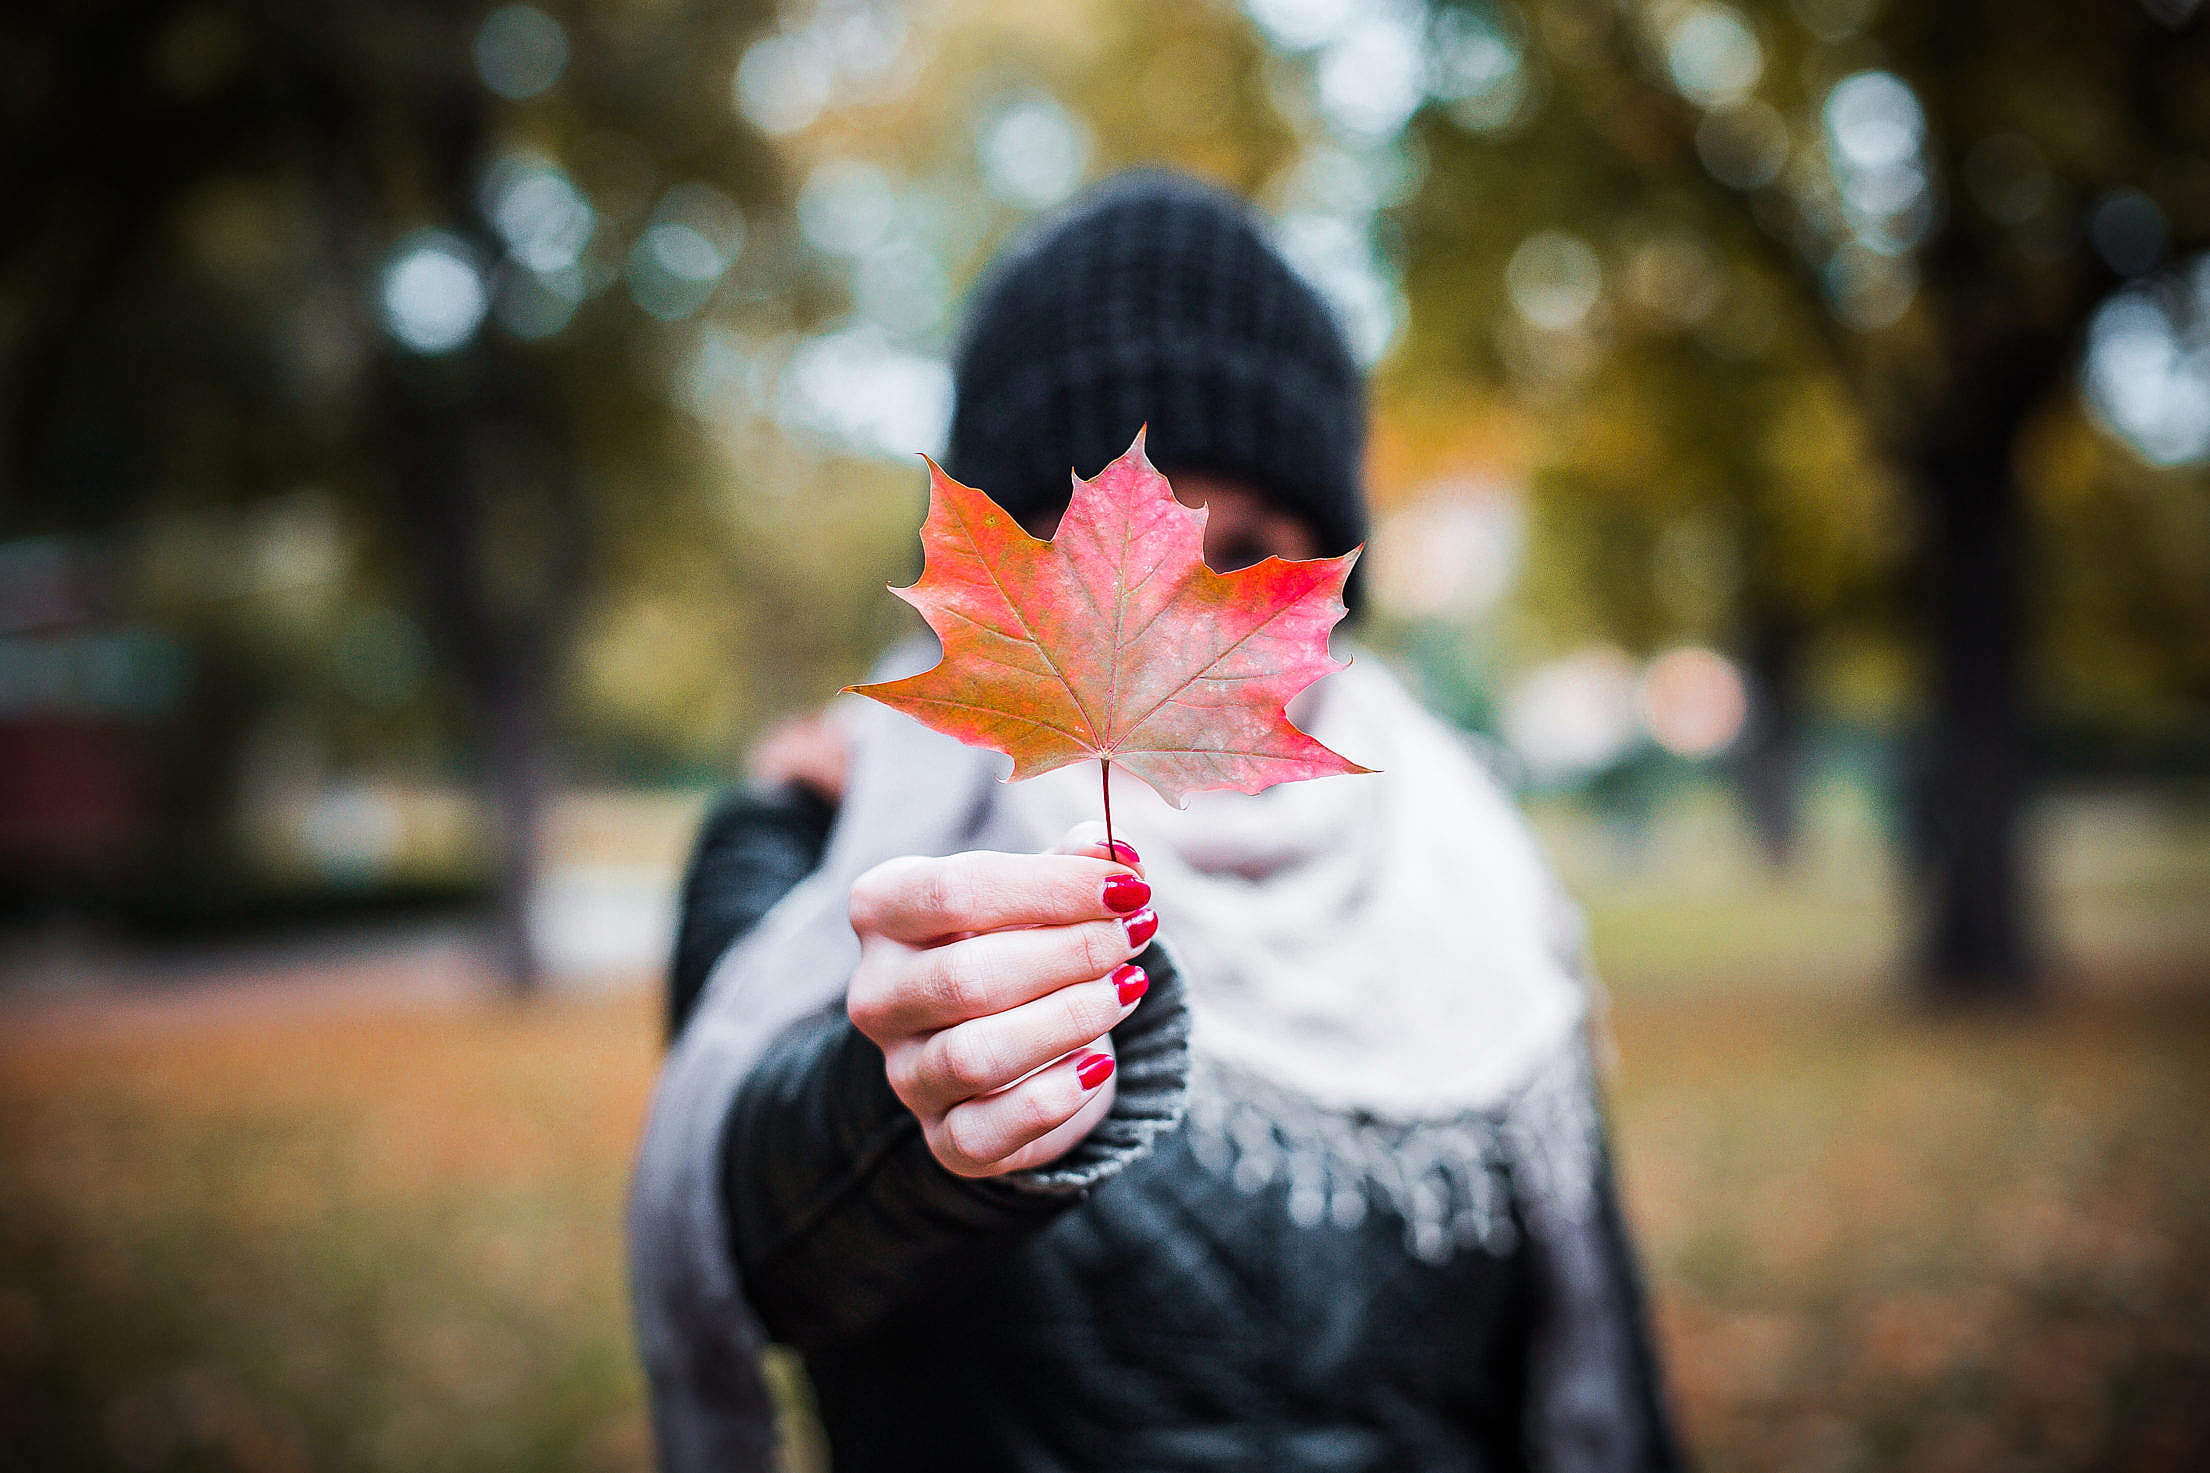 young-girl-holding-autumn-colored-maple-leaf-2-2210×1473